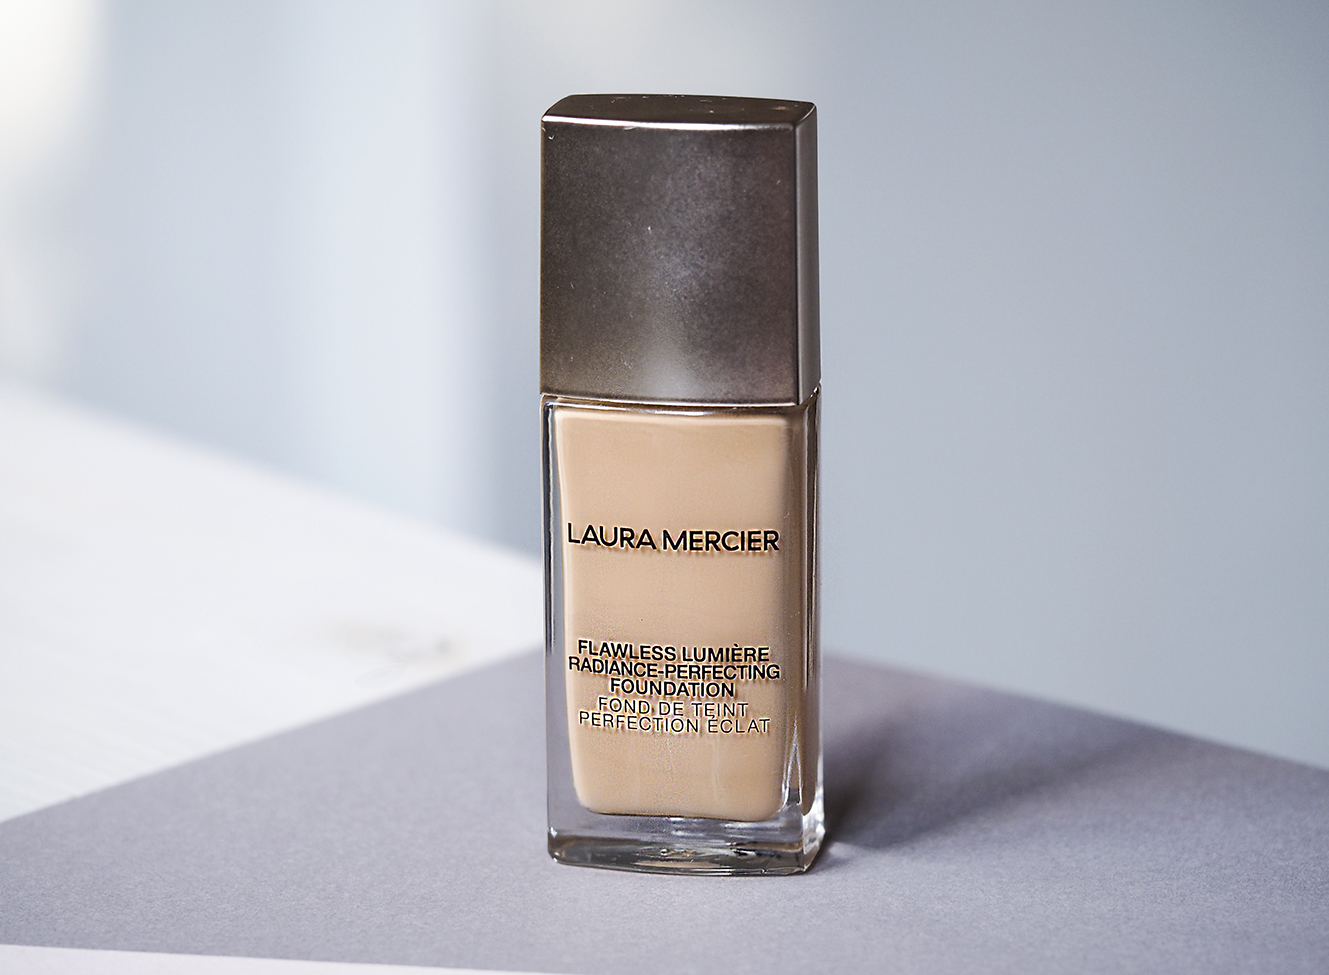 Uusi täydellinen meikkivoide – Laura Mercier Flawless Lumiere Radiance-Perfecting Foundation